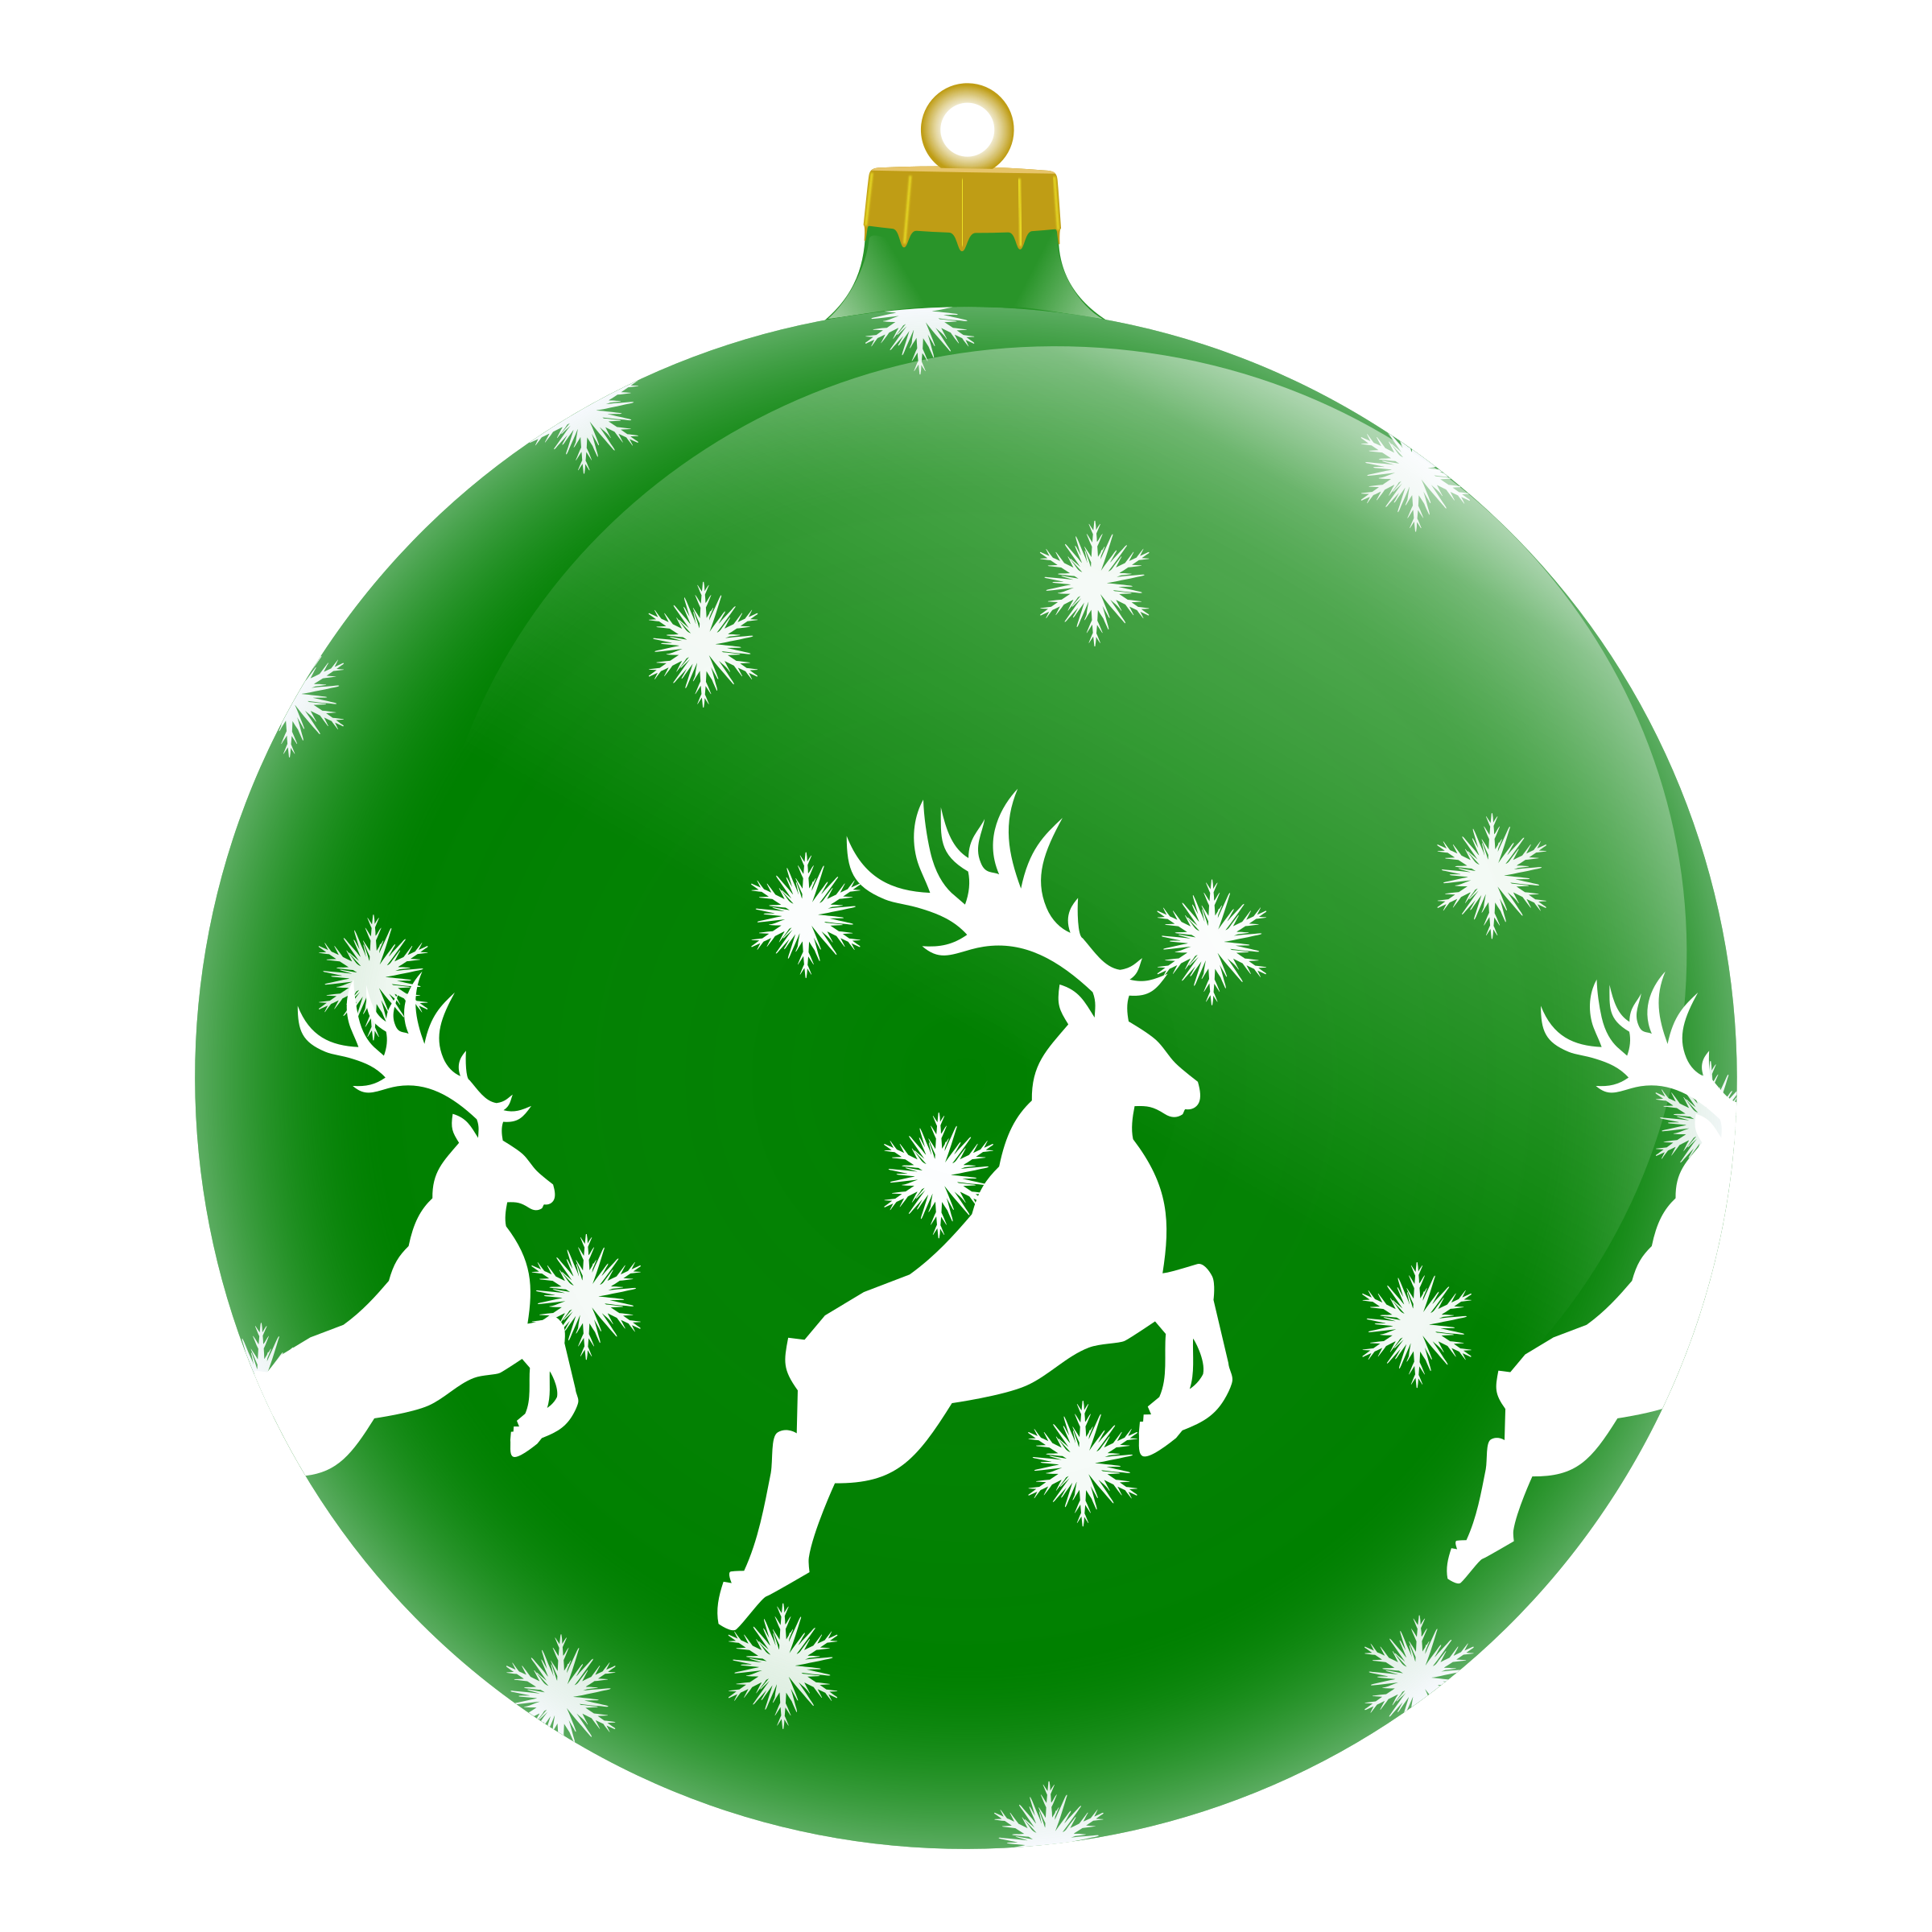 Holiday clipart embellishment. Palla con renna by